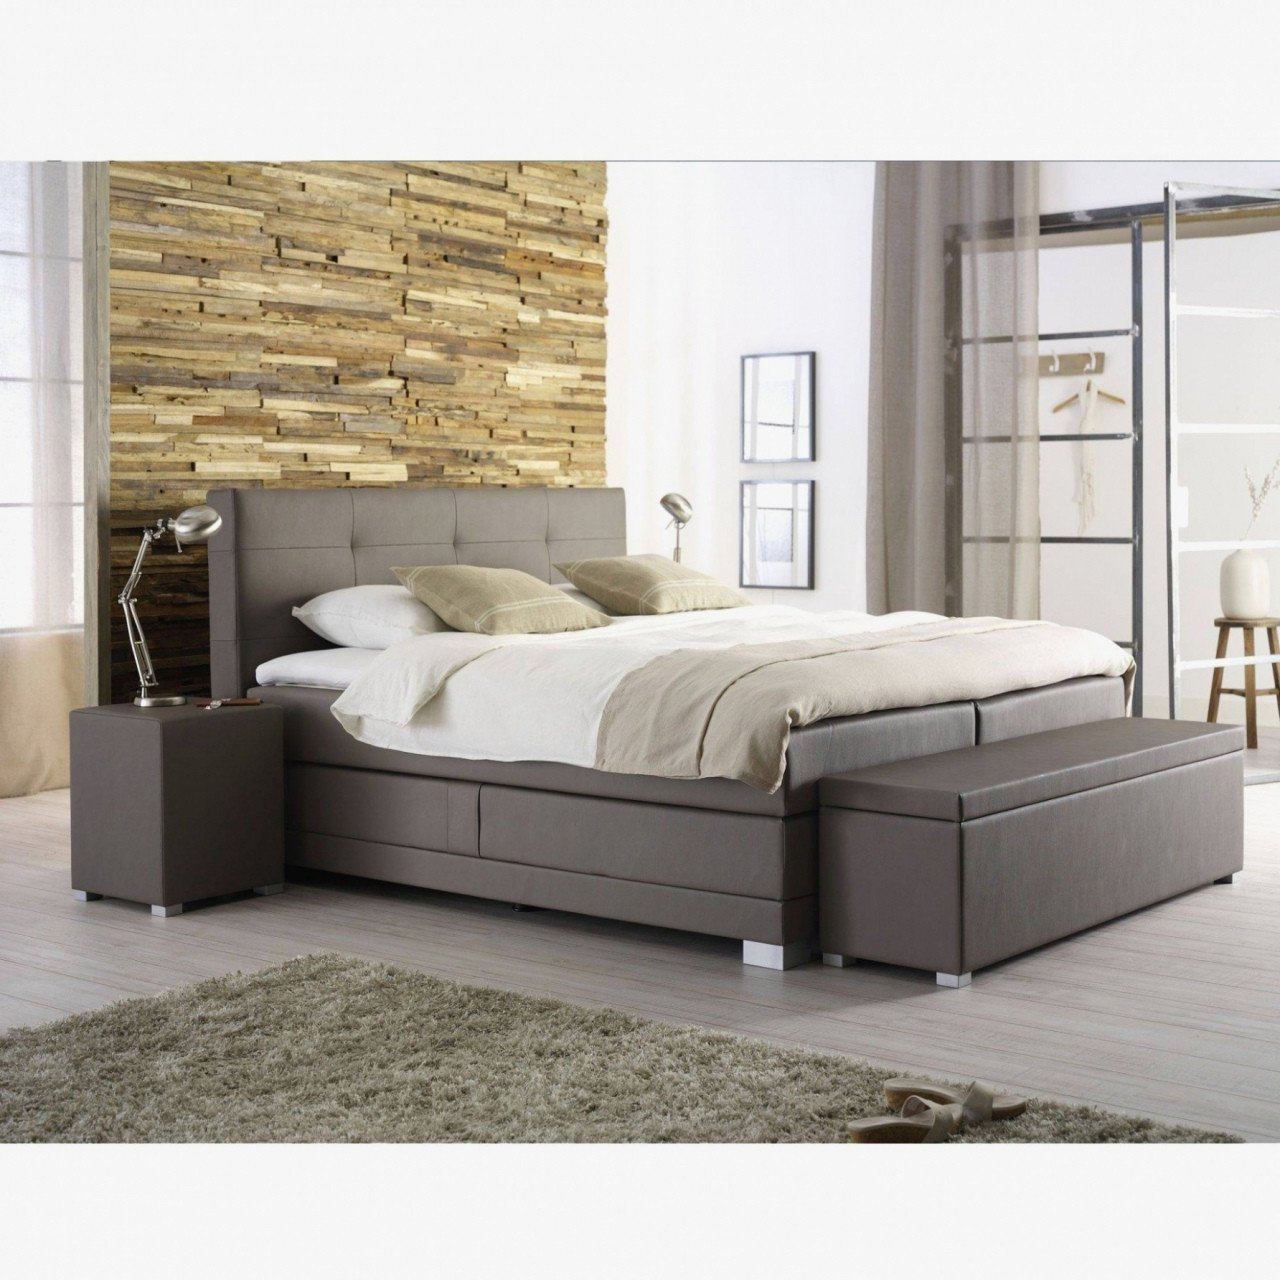 King Bedroom Set Ikea Lovely Bed with Drawers Under — Procura Home Blog